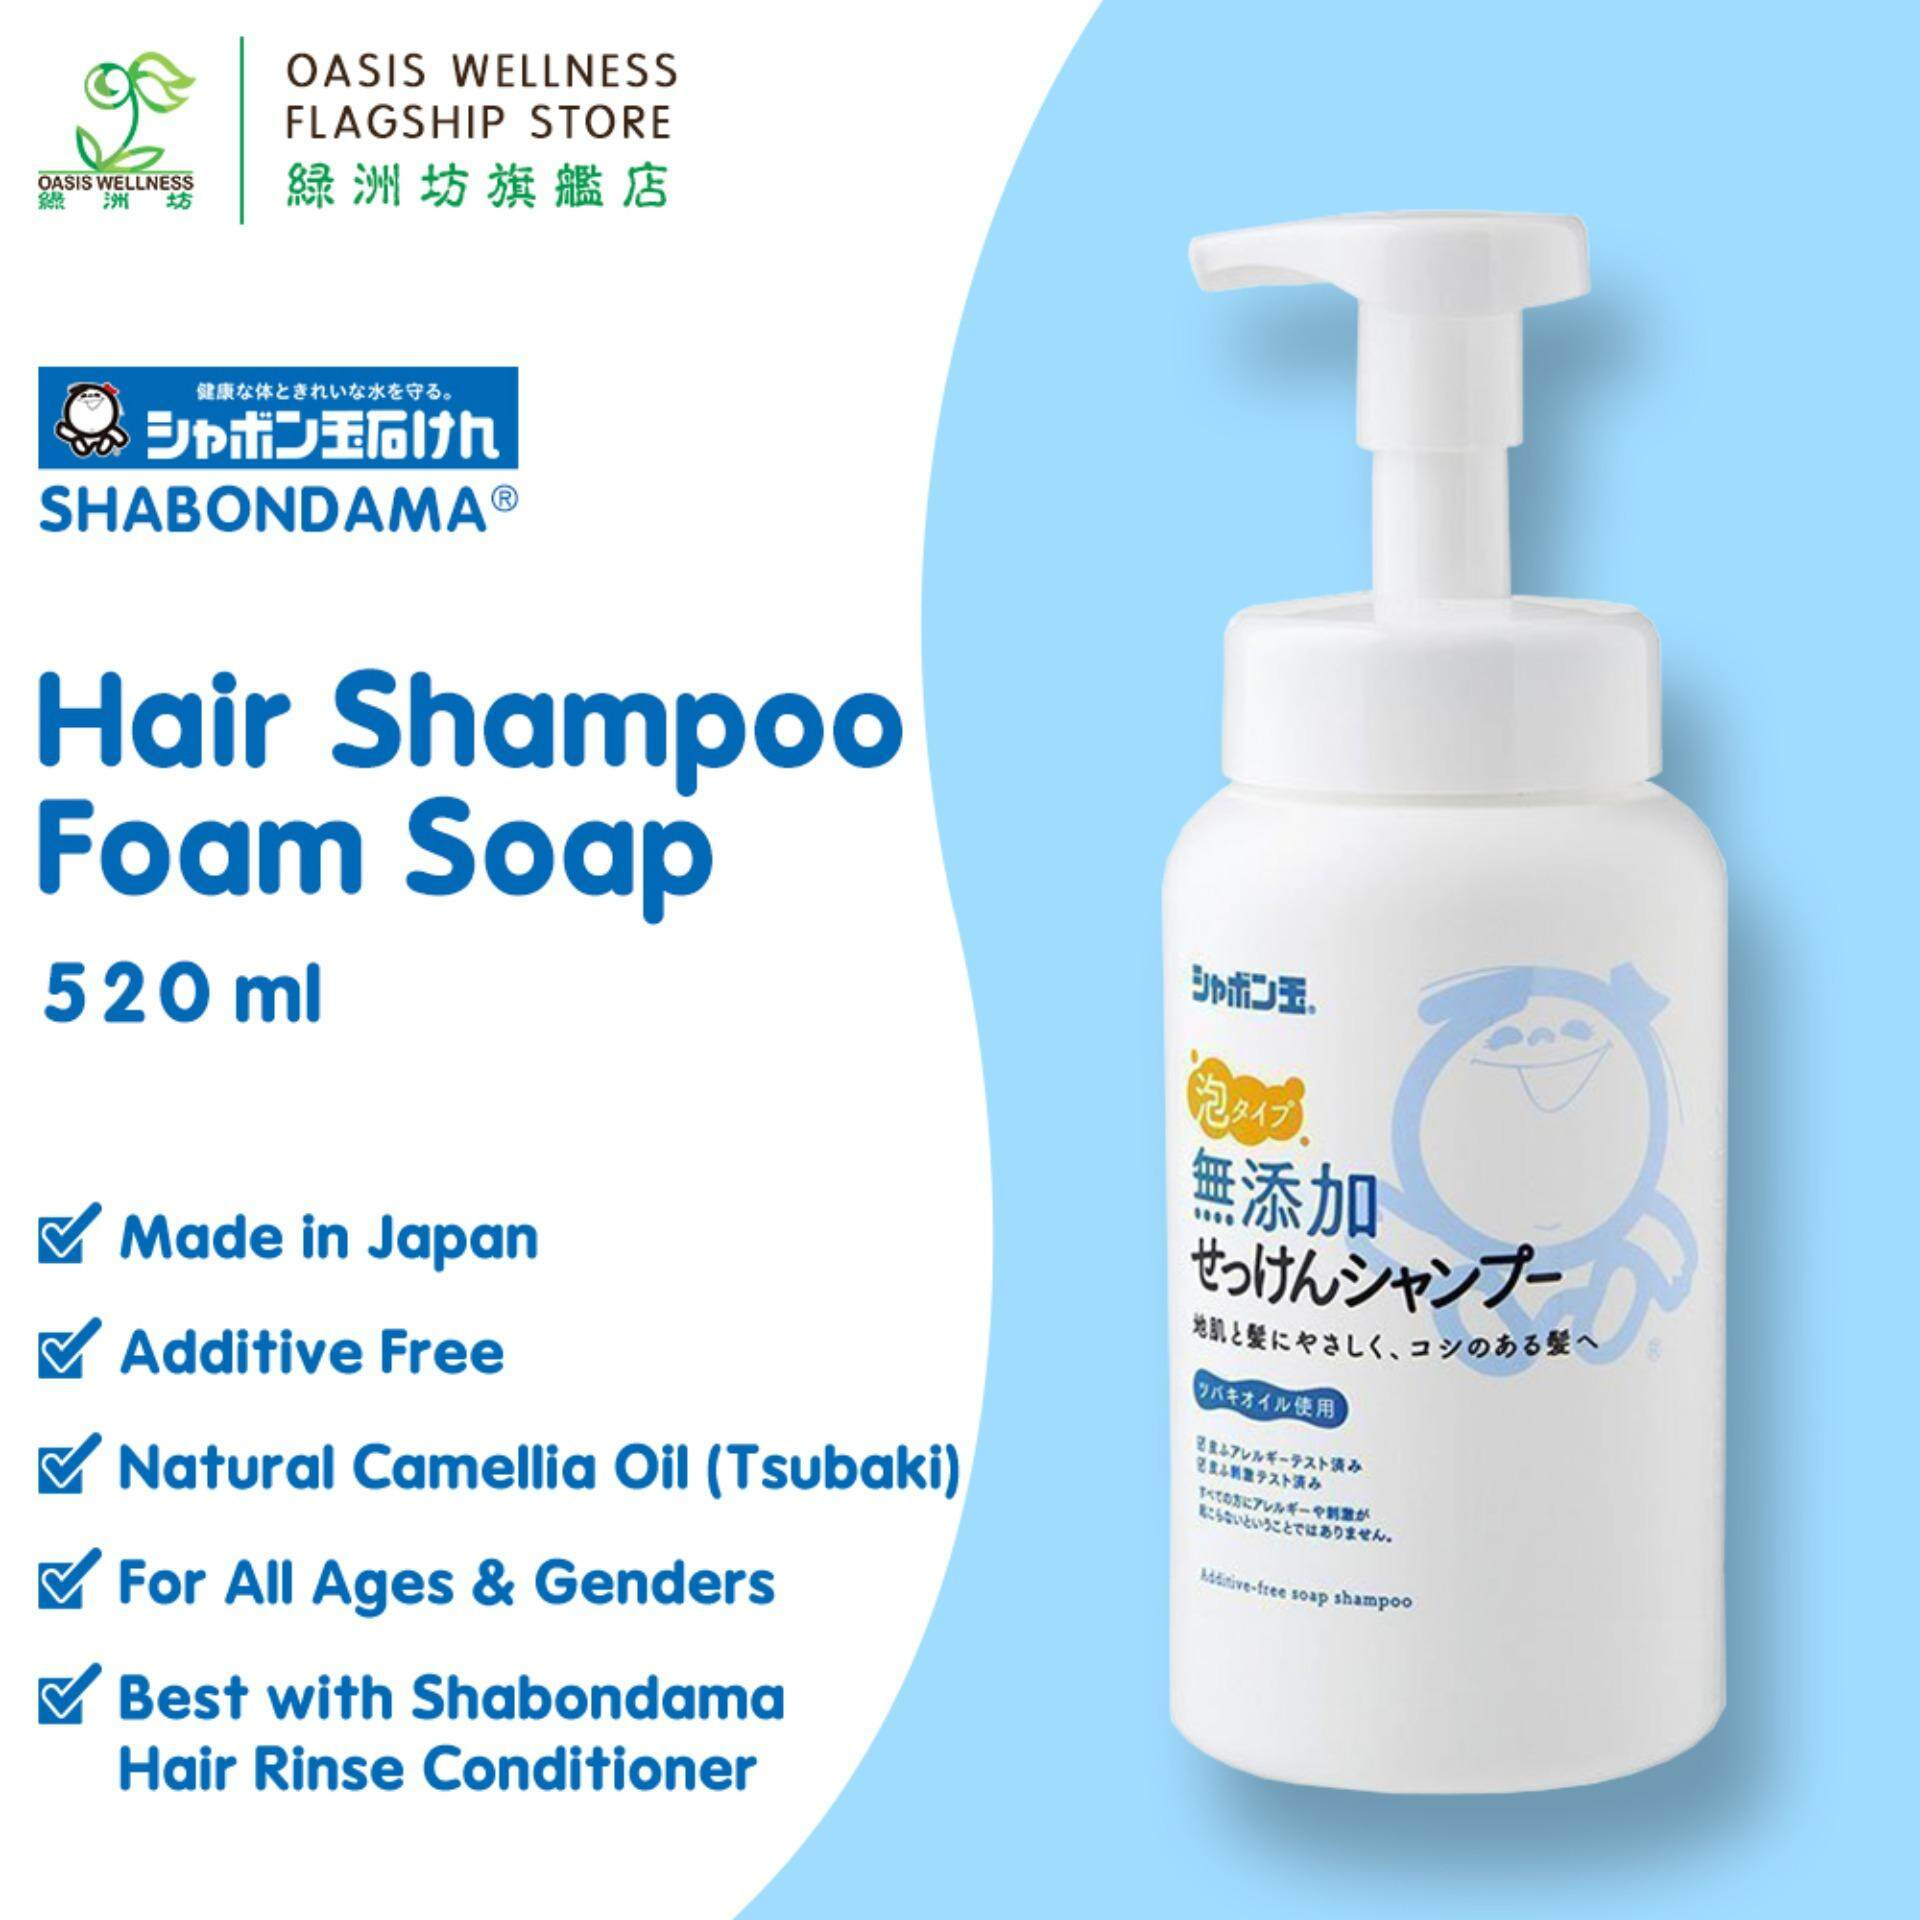 Shabondama Additive Free Hair Shampoo (520ml) - Natural Tsubaki Oil Hair Shampoo - Syampu Sabun Tsubaki Jepun - シャボン玉石けん 山茶花泡泡洗发水 (520毫升)